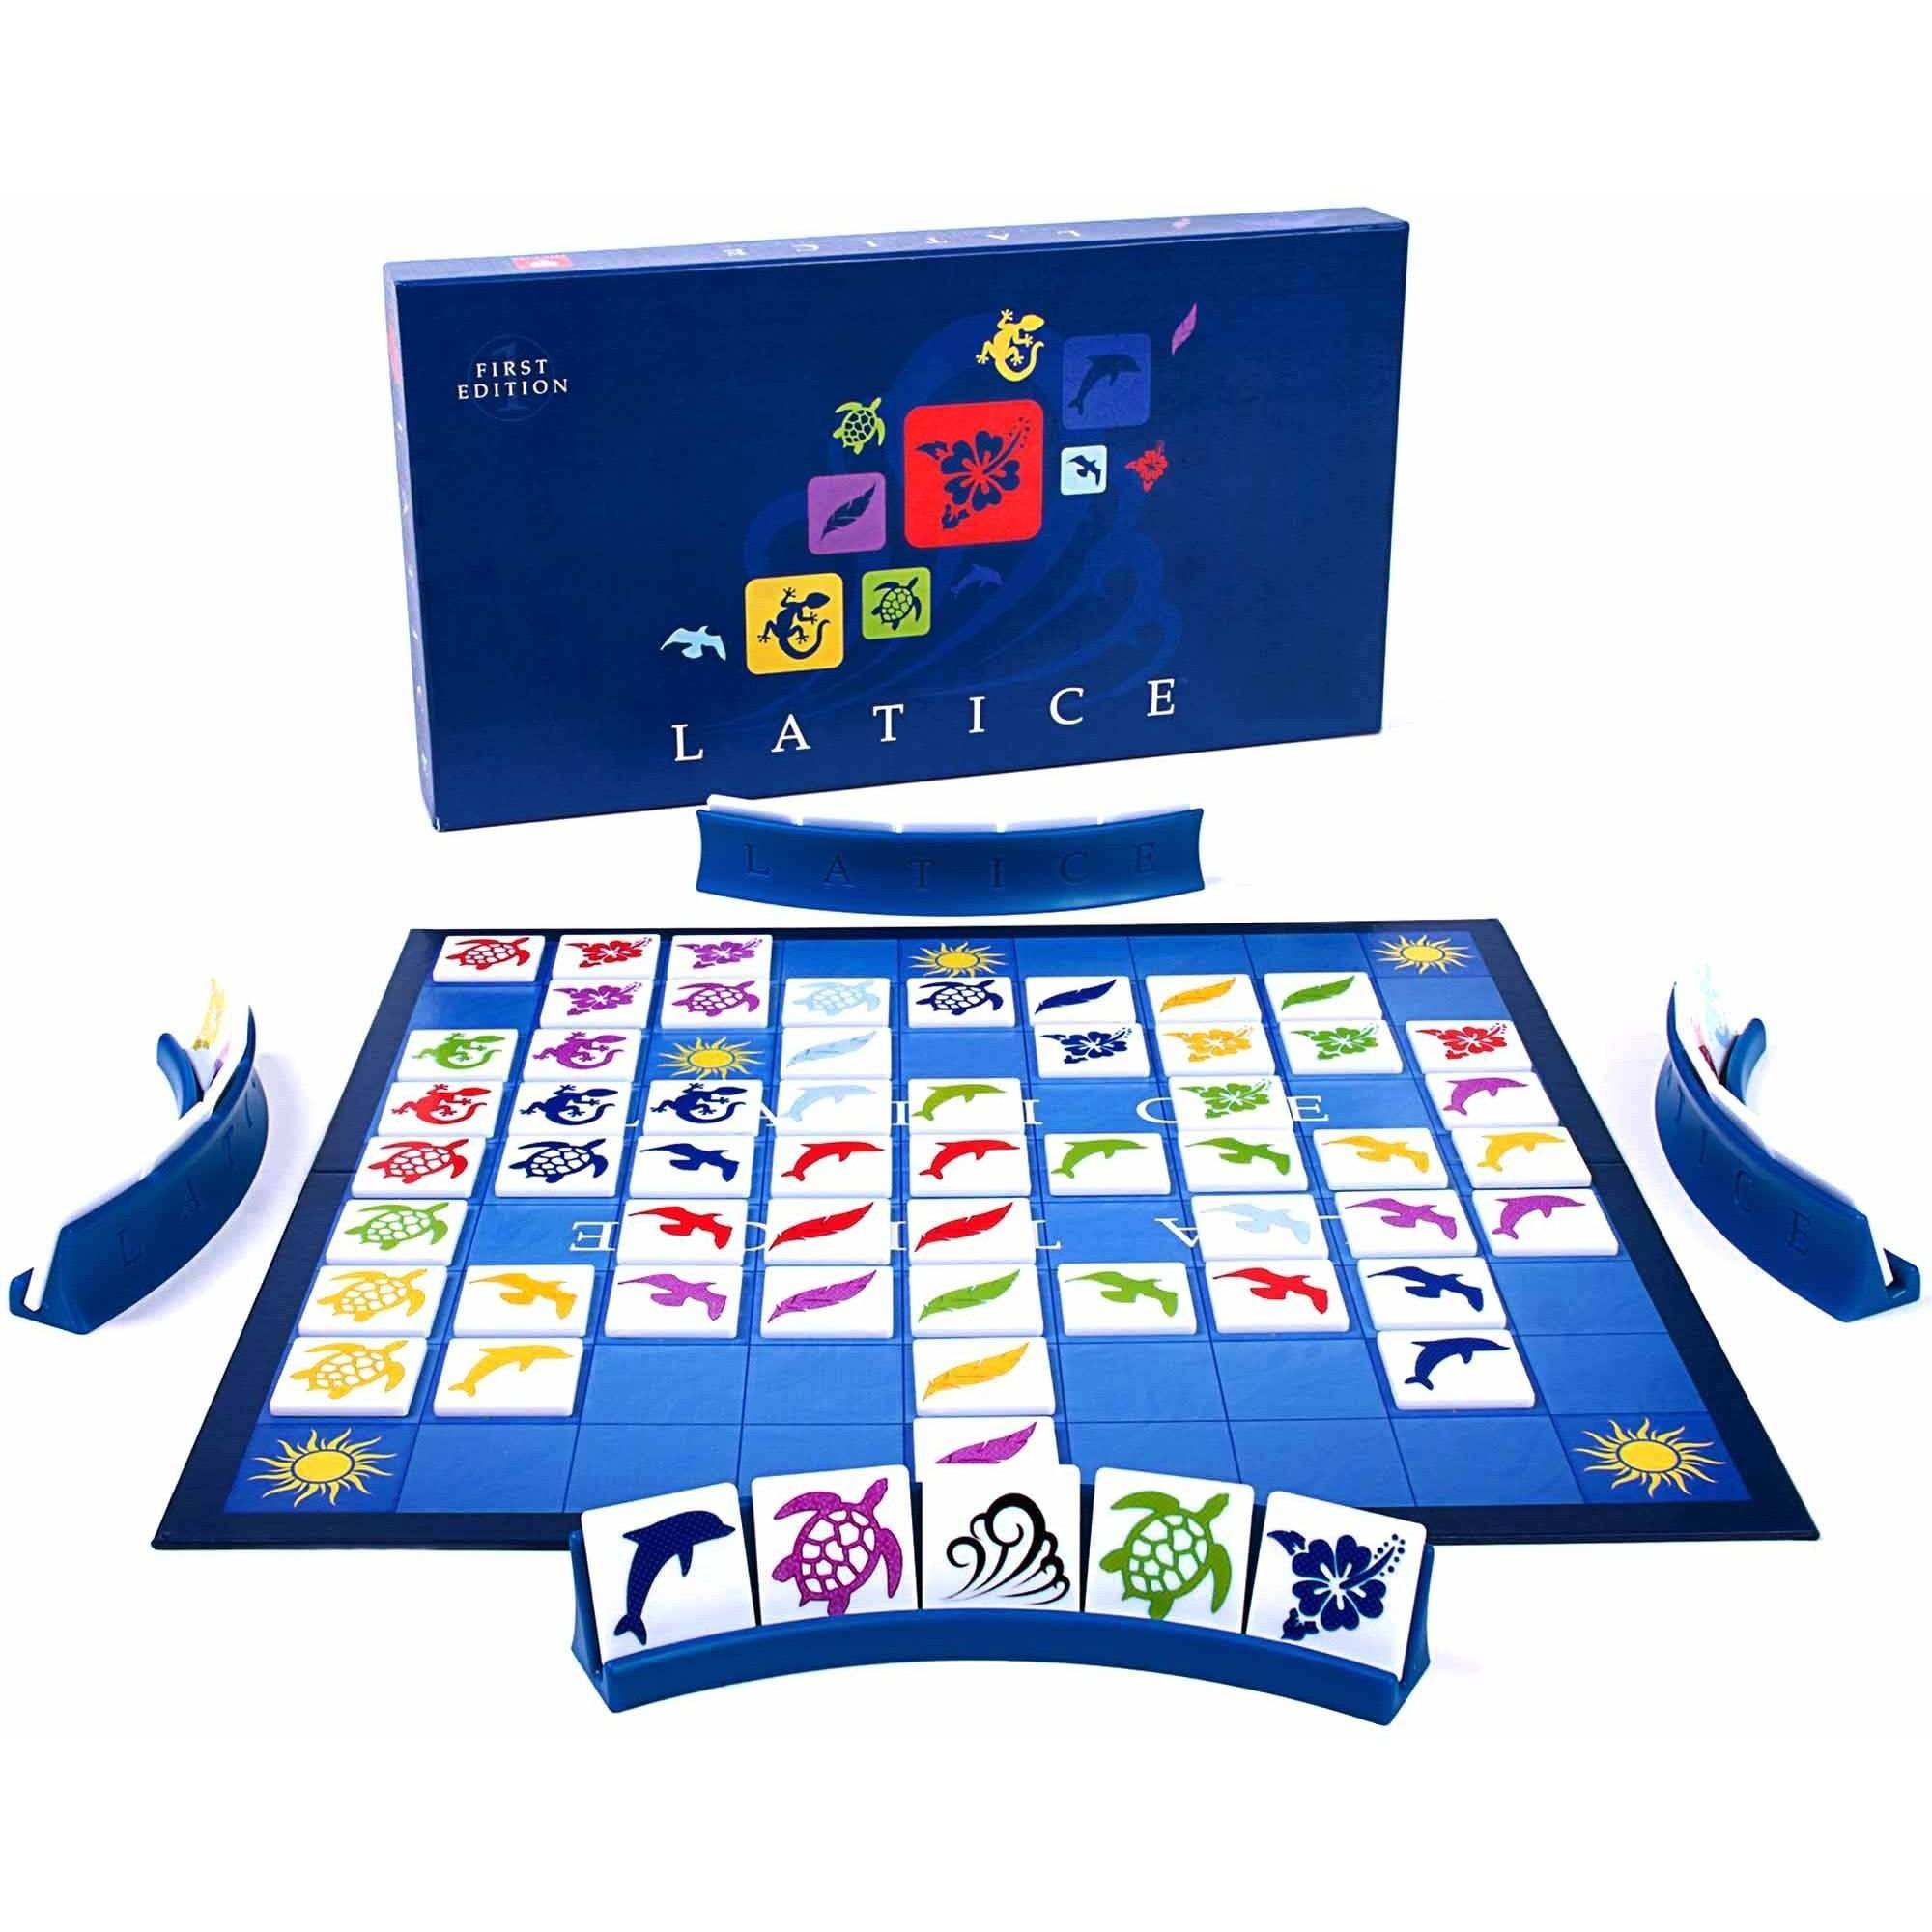 Latice Deluxe Edition Strategy Board Game